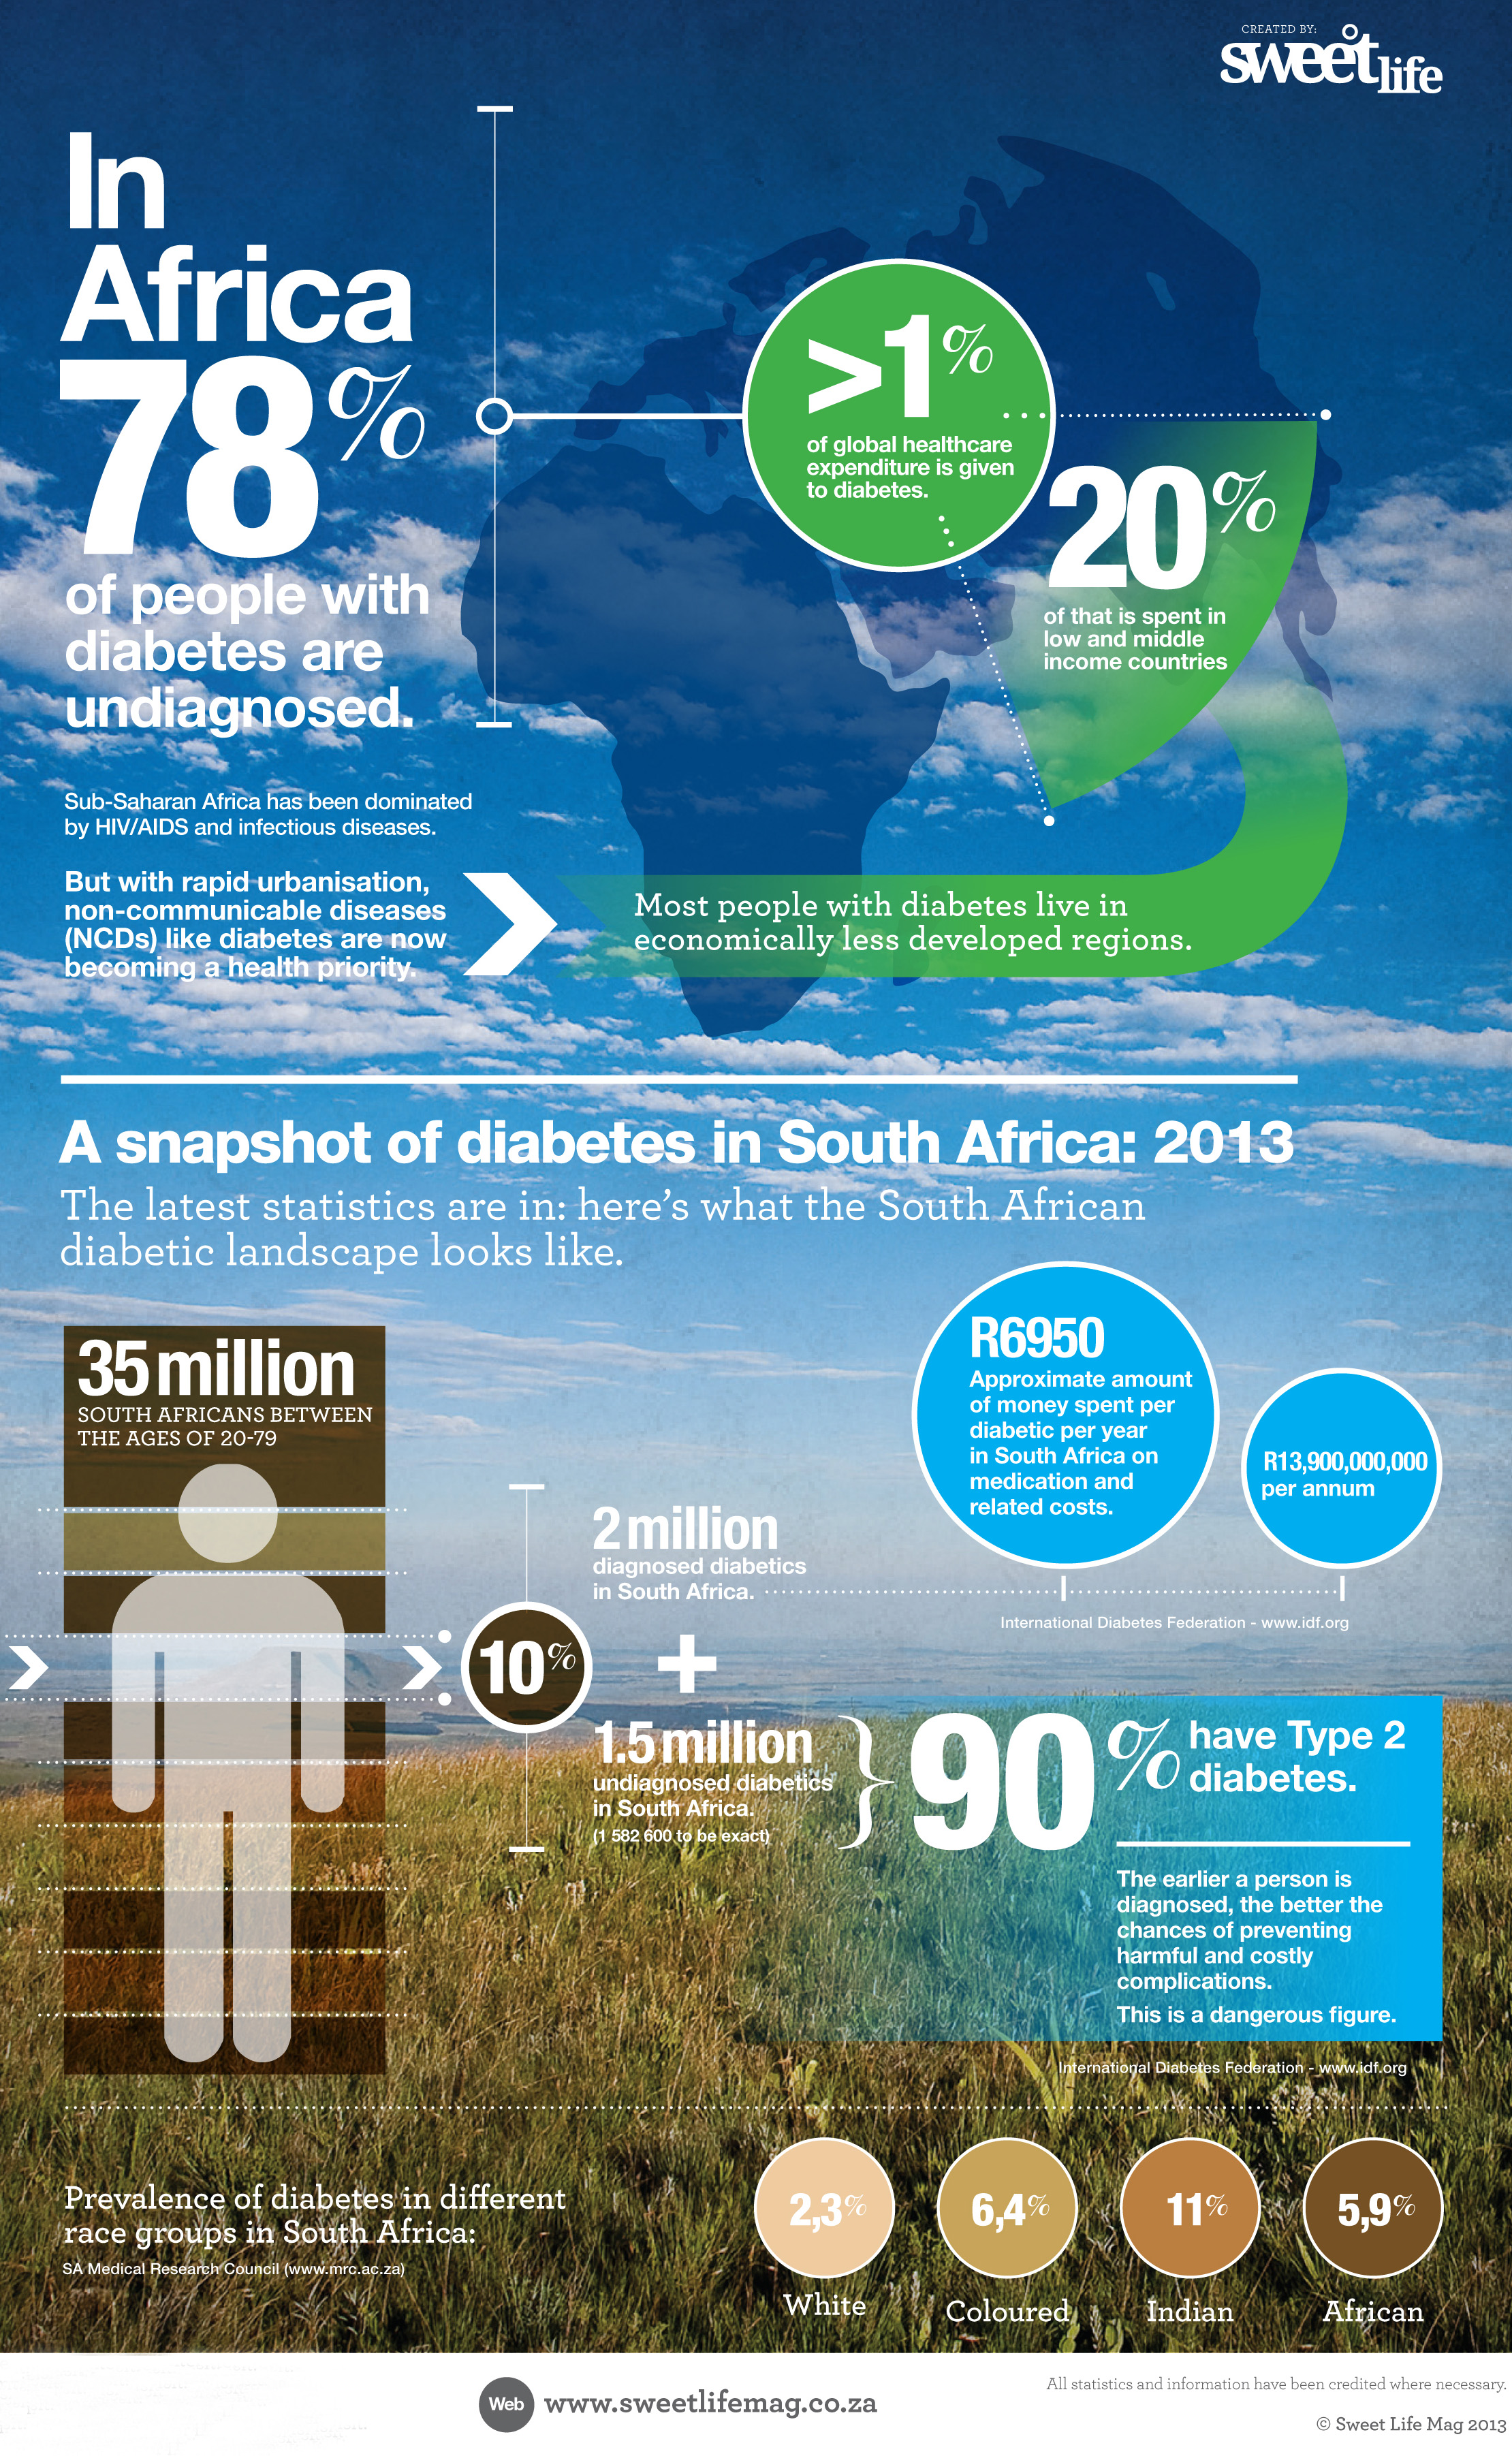 A snapshot of diabetes in South Africa